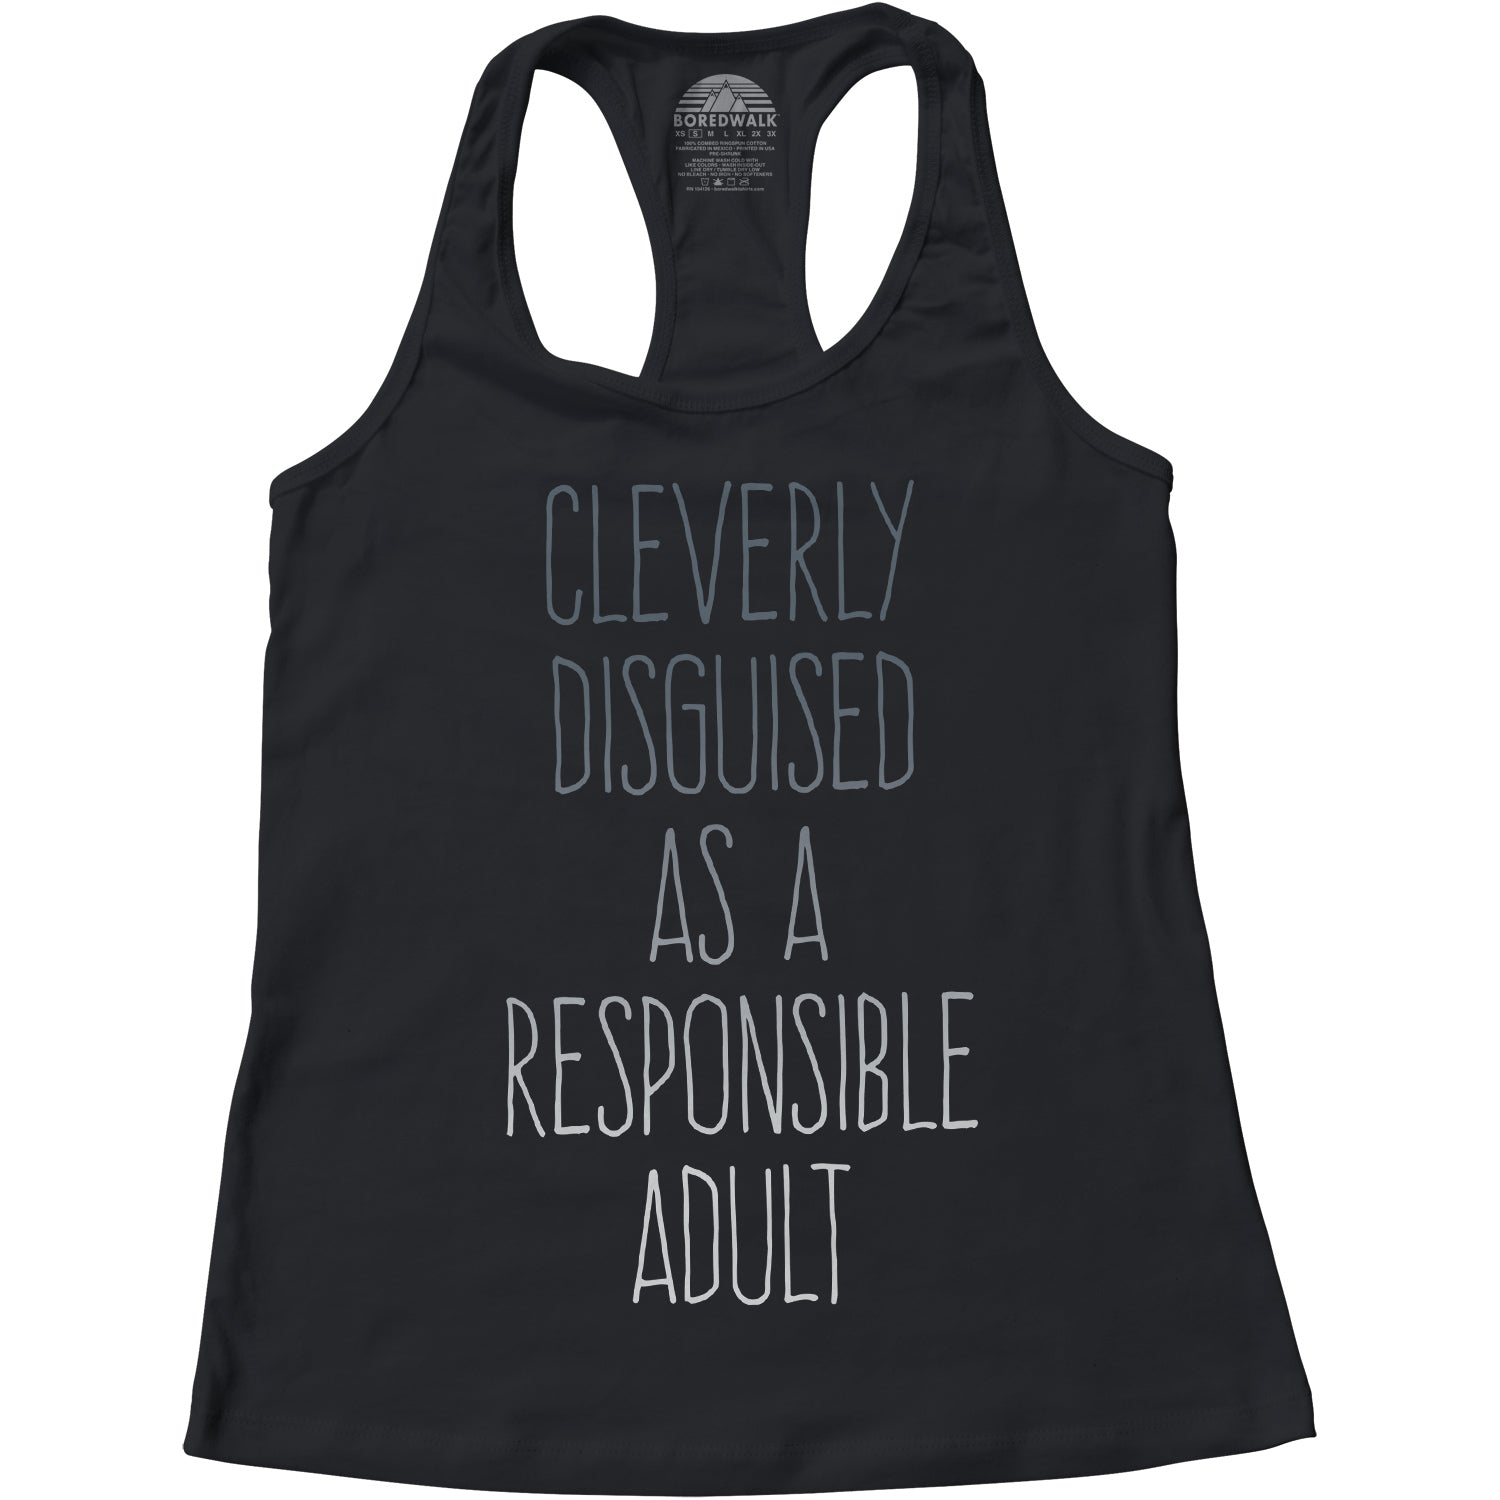 Women's Cleverly Disguised As A Responsible Adult Racerback Tank Top